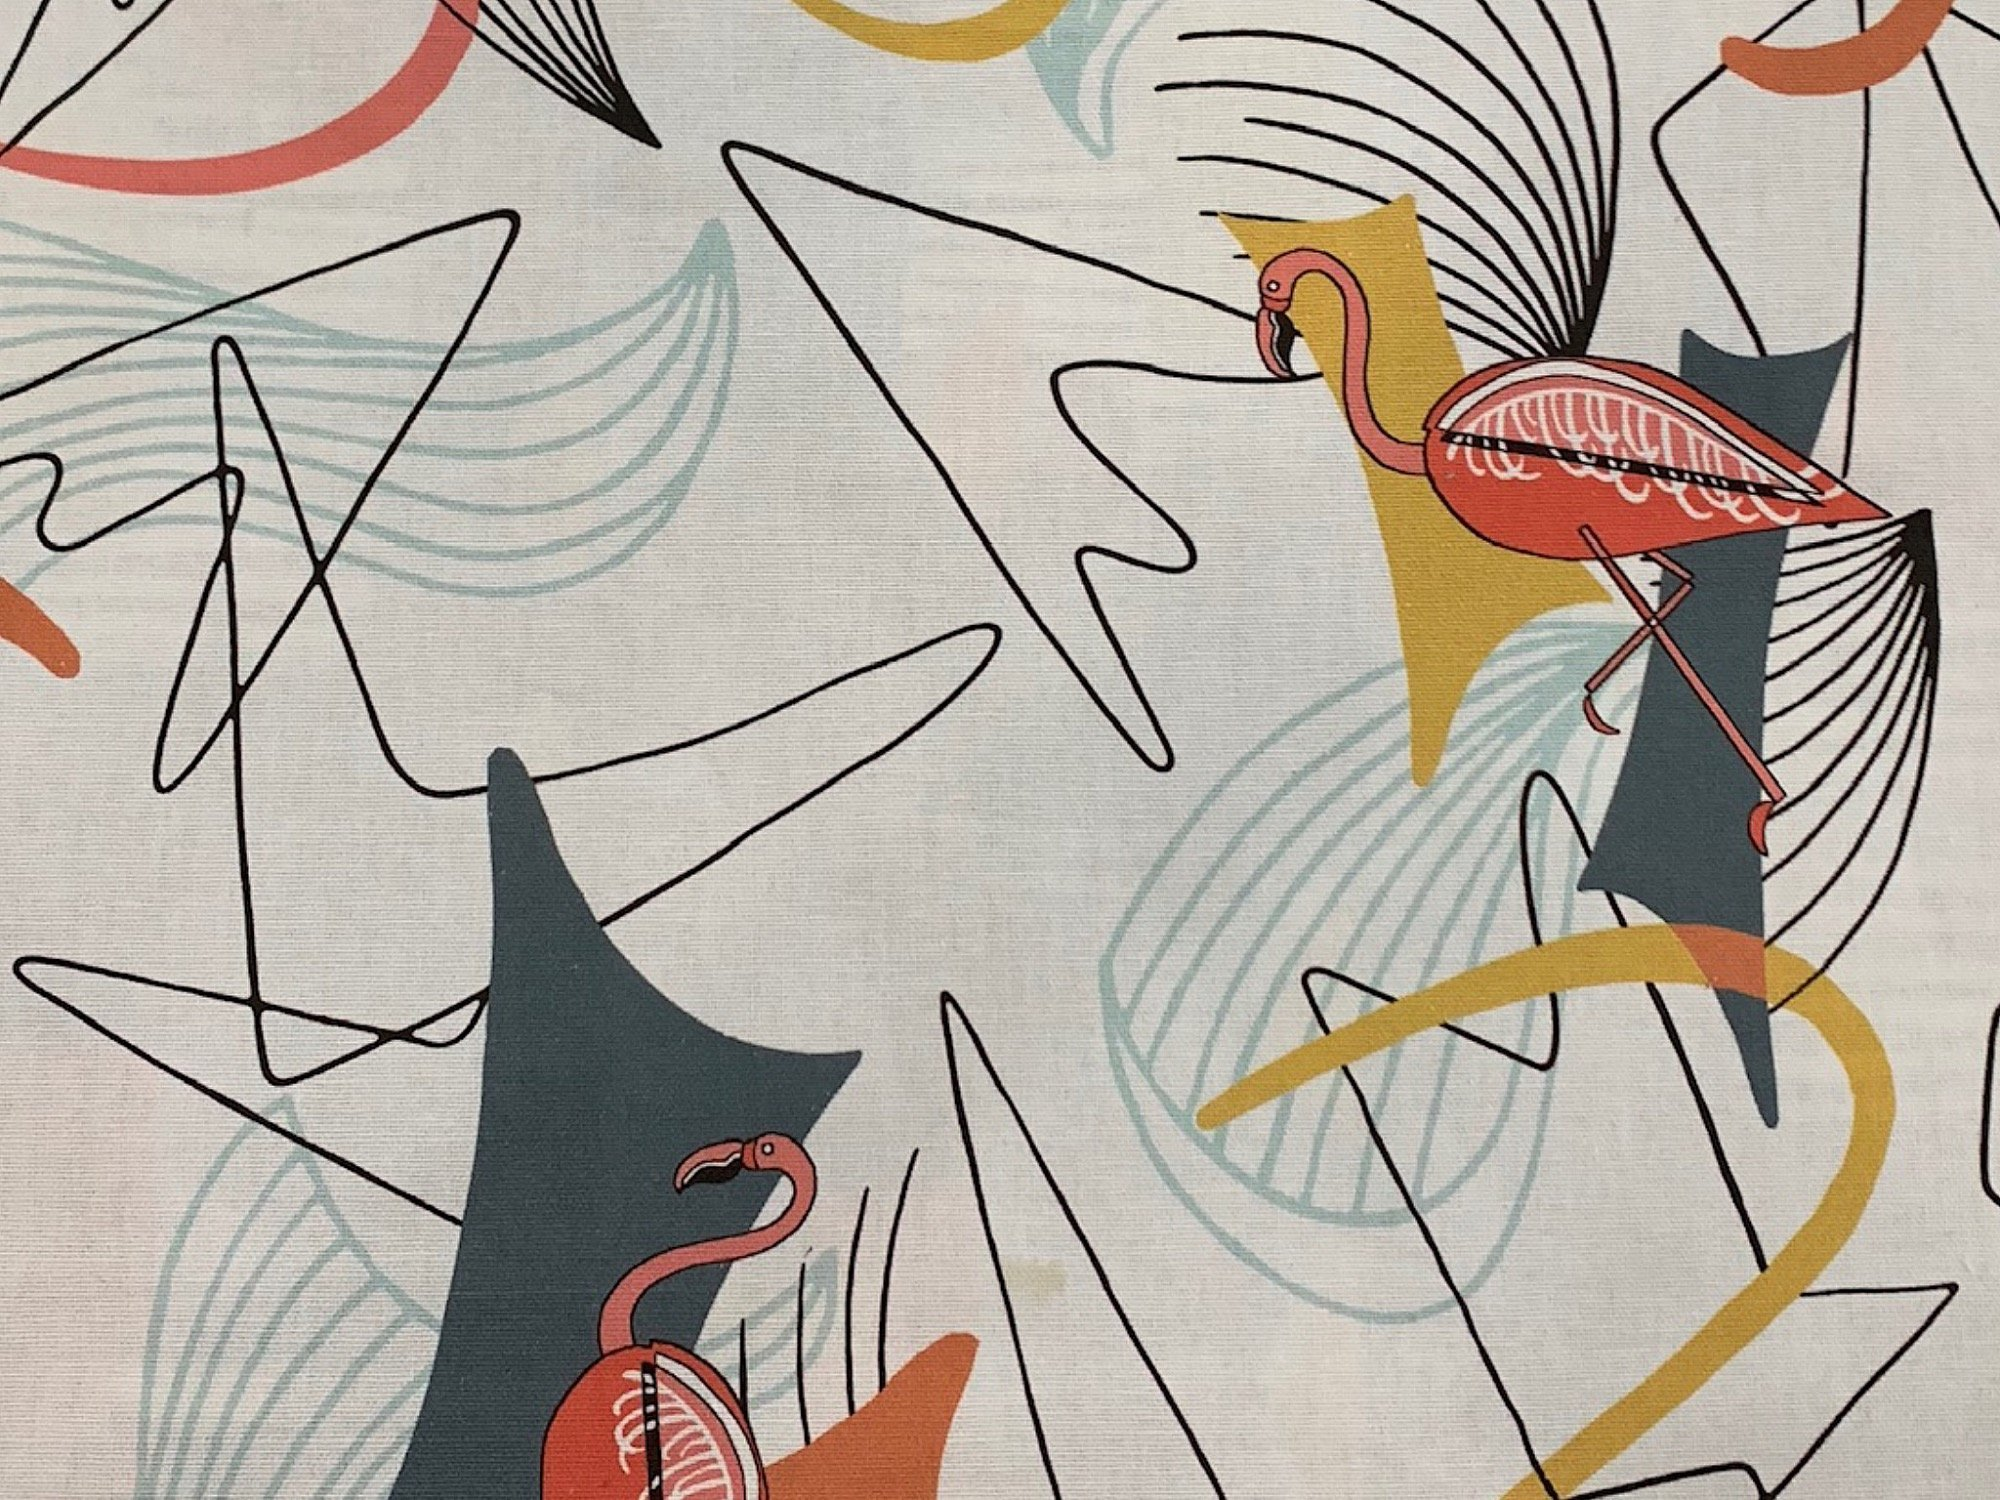 Coming Soon! Atomic Retro Mid Century Modern Flamingo Guitar Boomerang Sputnik Space Age MCM Cotton Fabric Light Weight Canvas